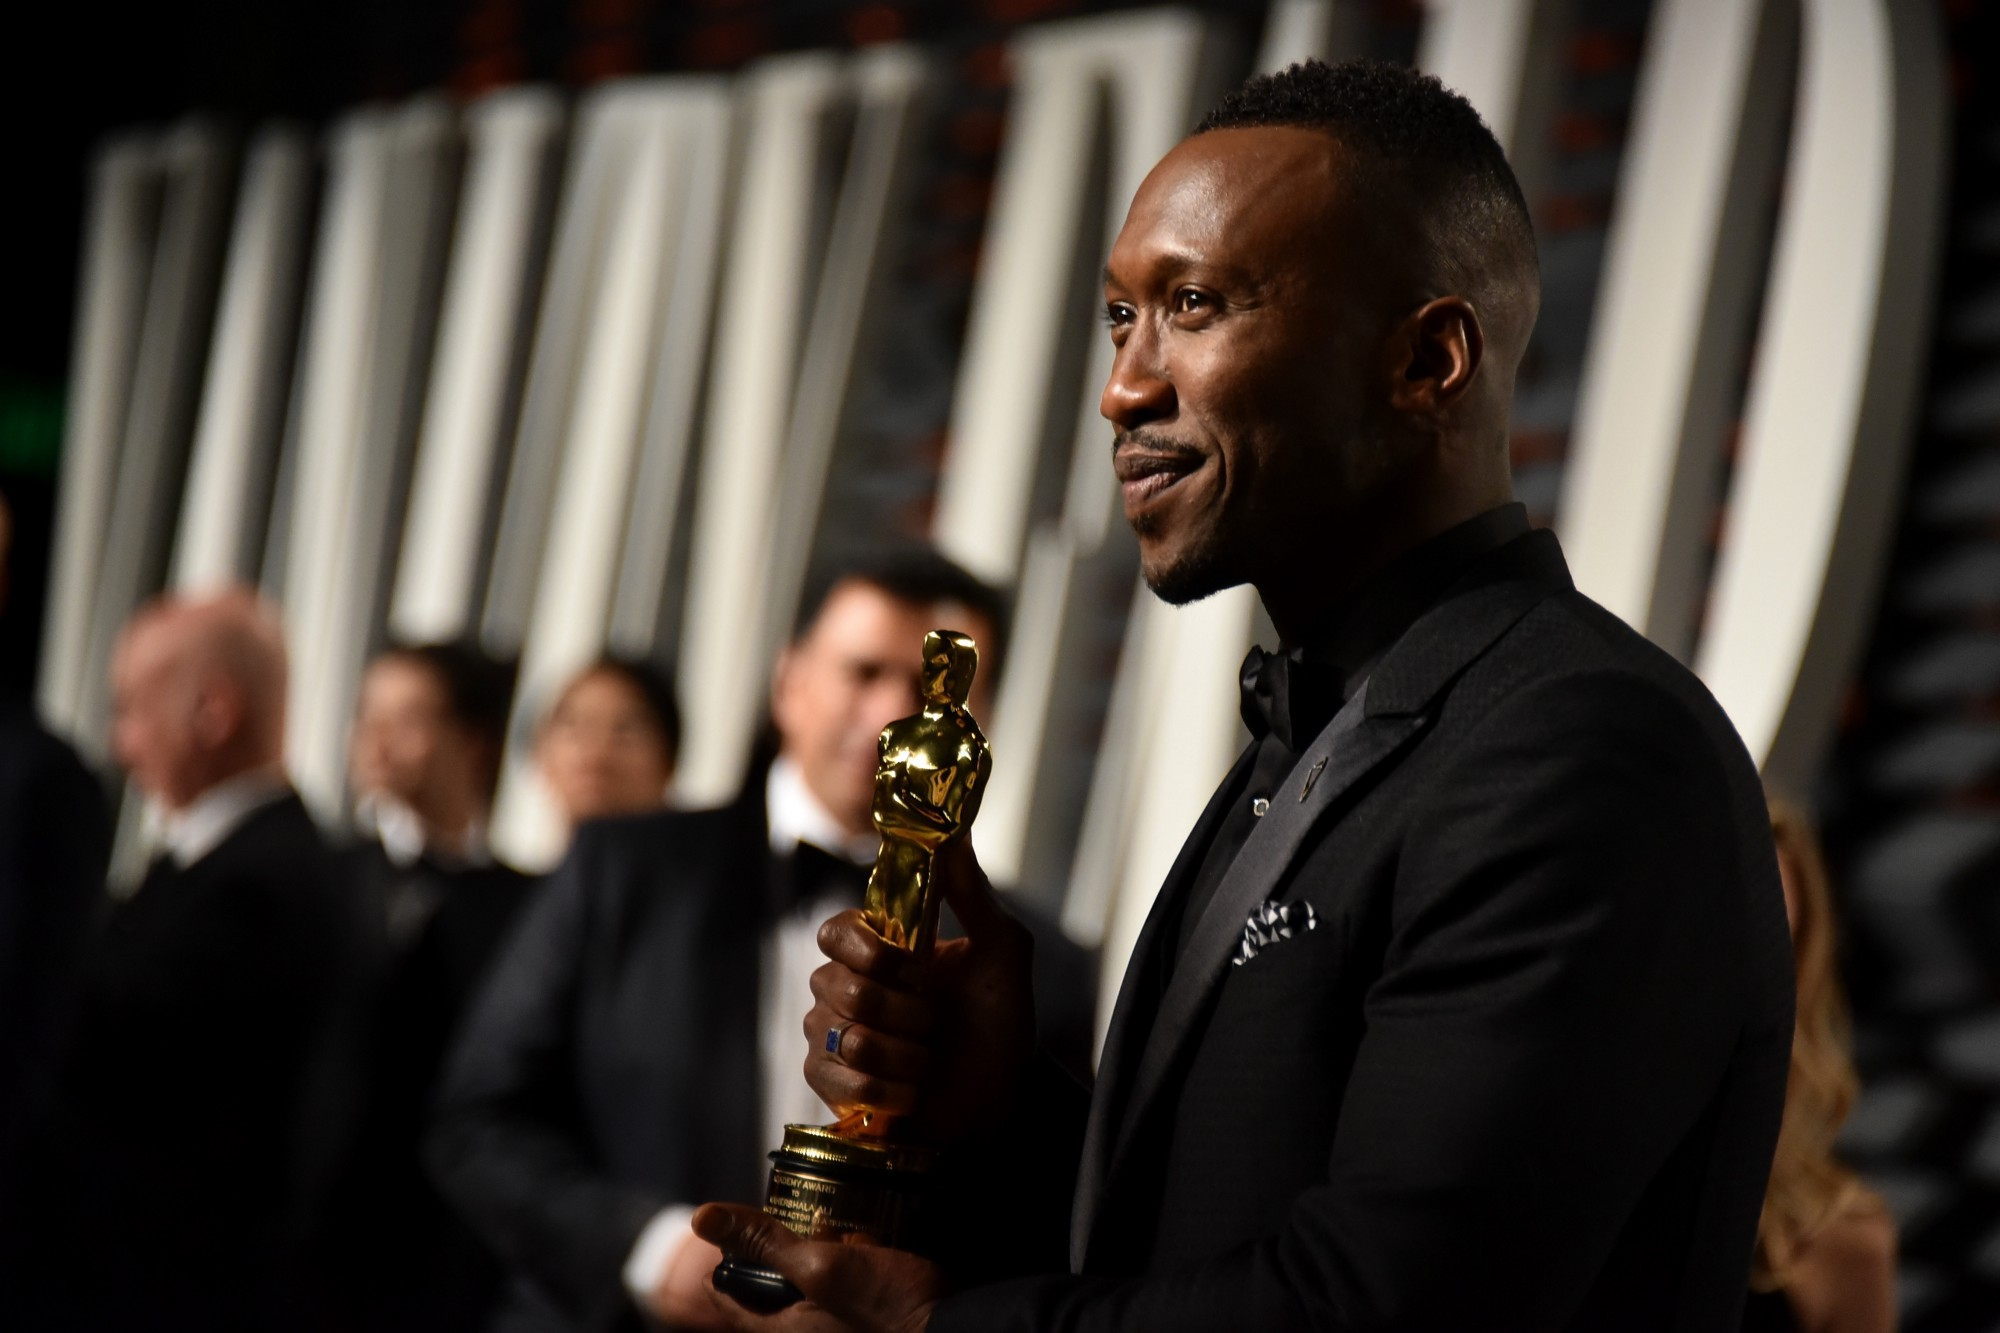 'True Detective' Casts Mahershala Ali to Save Season 3